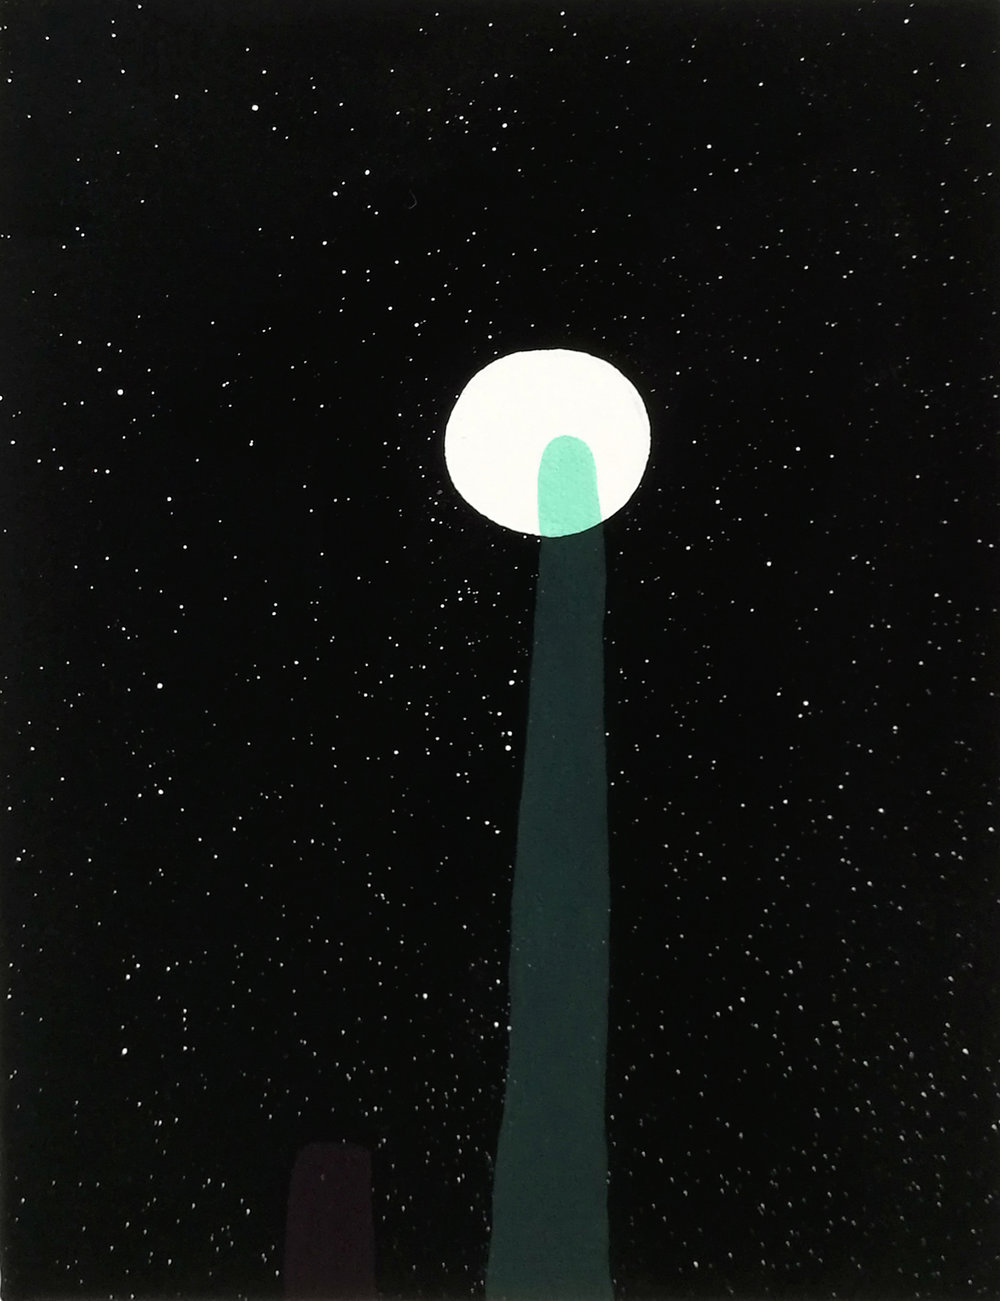 Peter McDonald_Moon 2_Acrylic gouache on canvas_20x15x2cm_2018.jpg